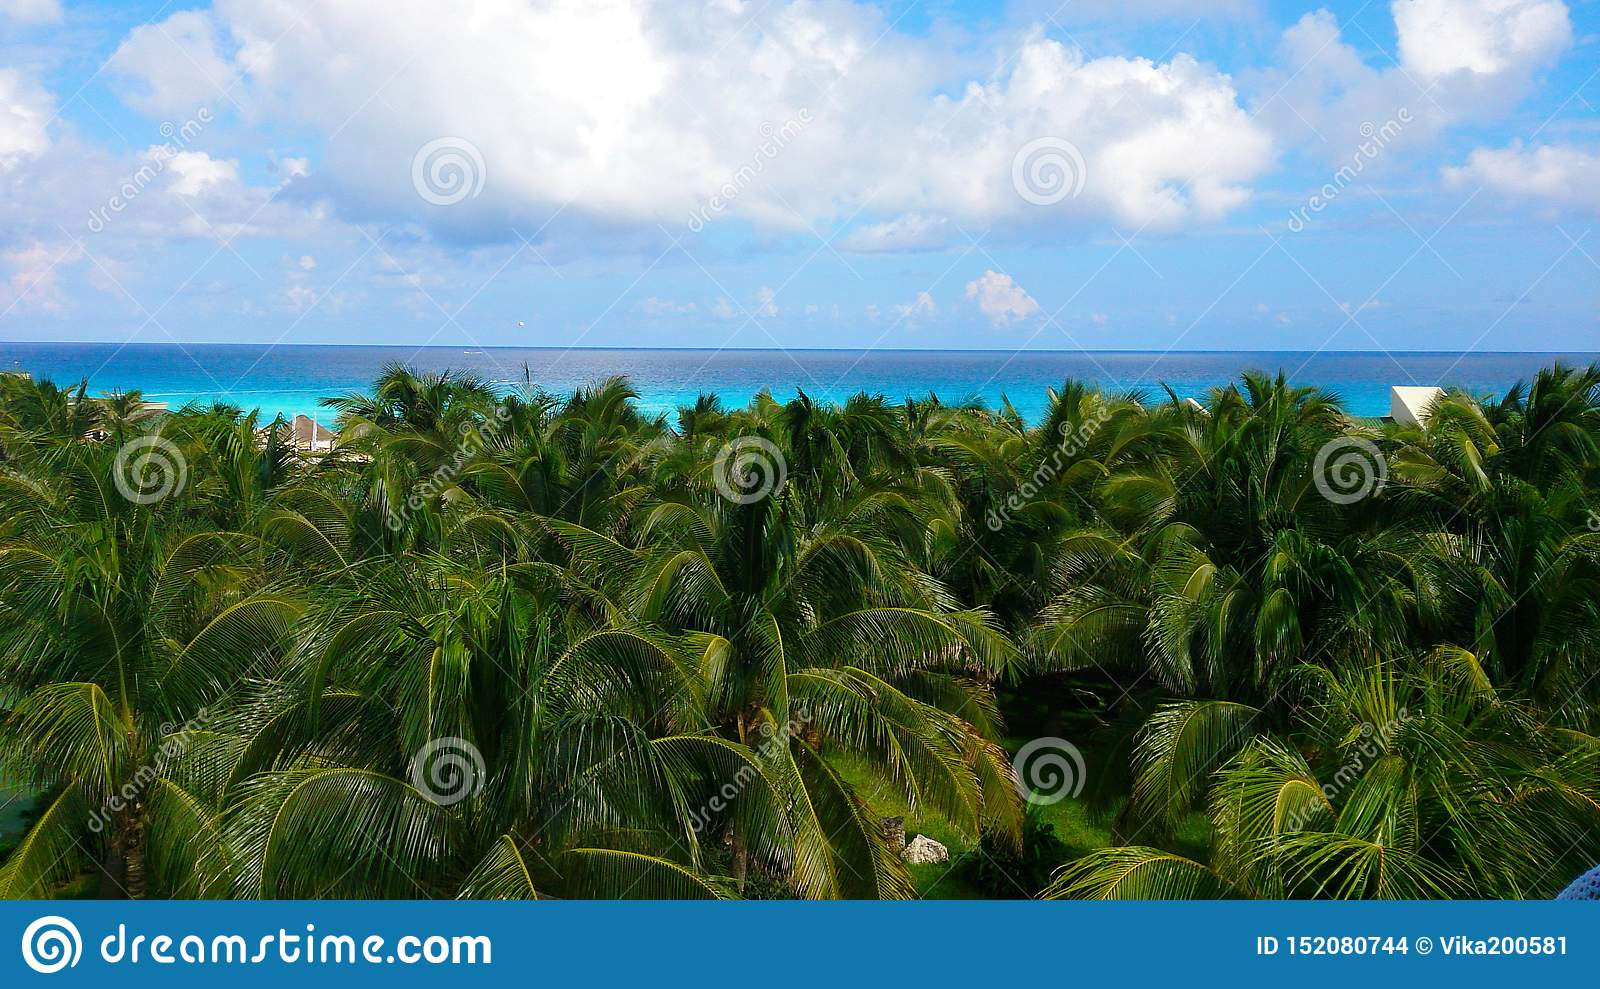 Beautiful beach. Summer holiday and vacation concept for tourism. Inspirational tropical landscape.